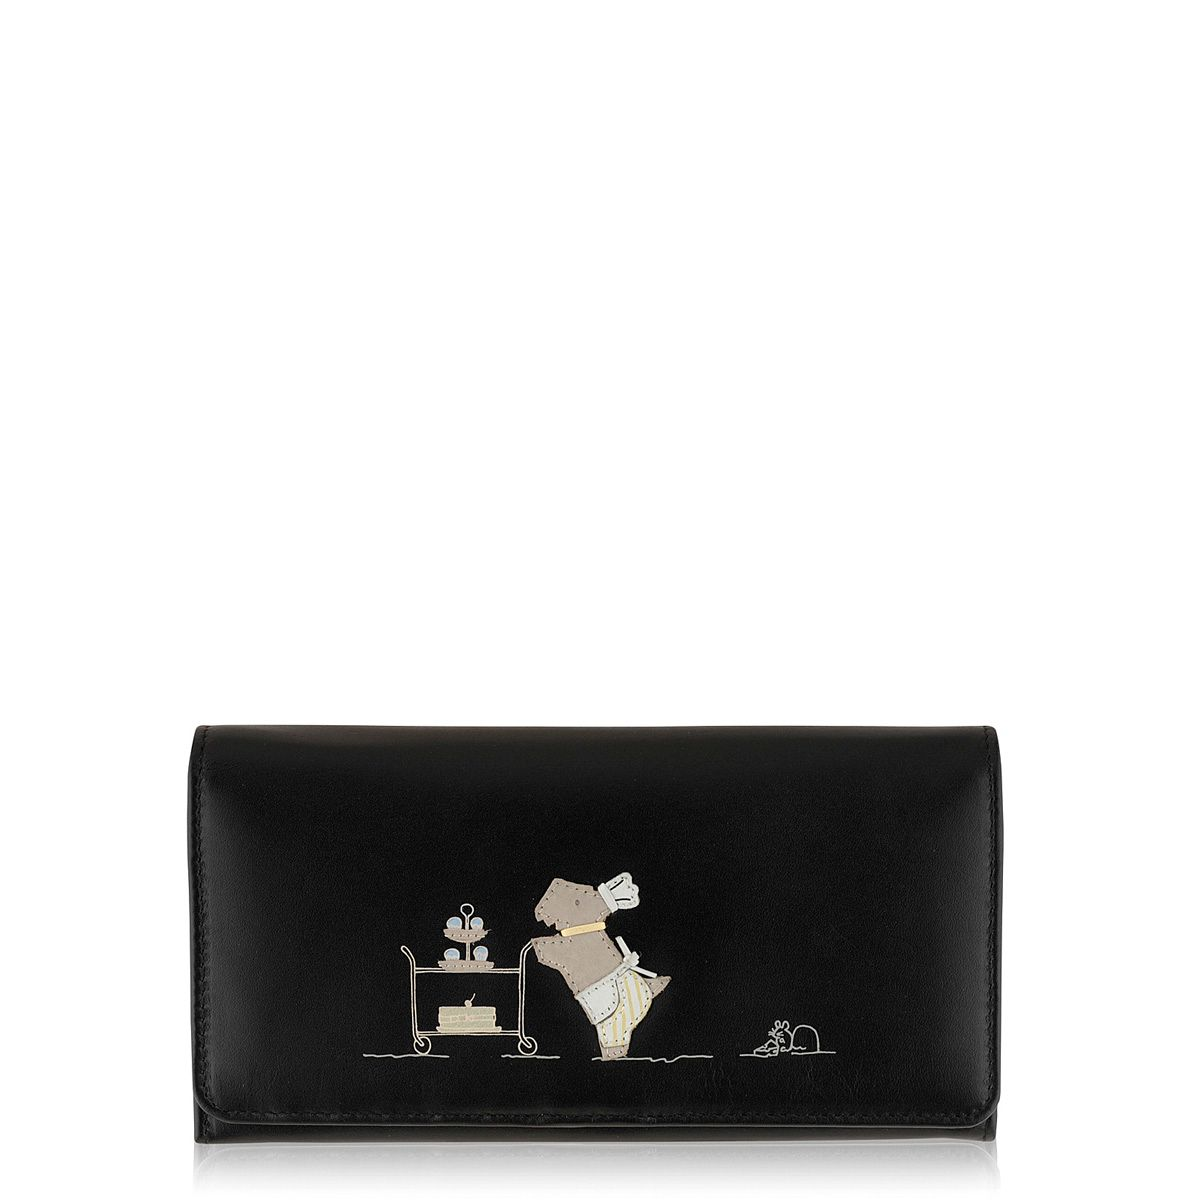 Patisserie Raderlie large black flapover purse